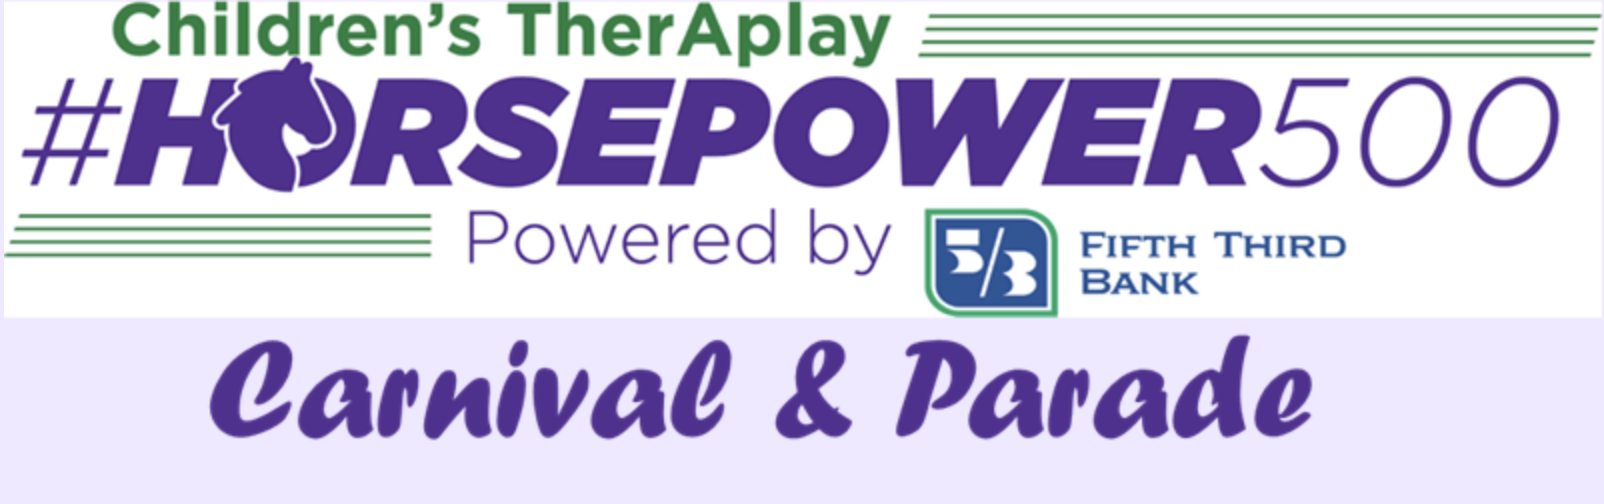 Children's TherAplay Horsepower500 Carnival & Parade